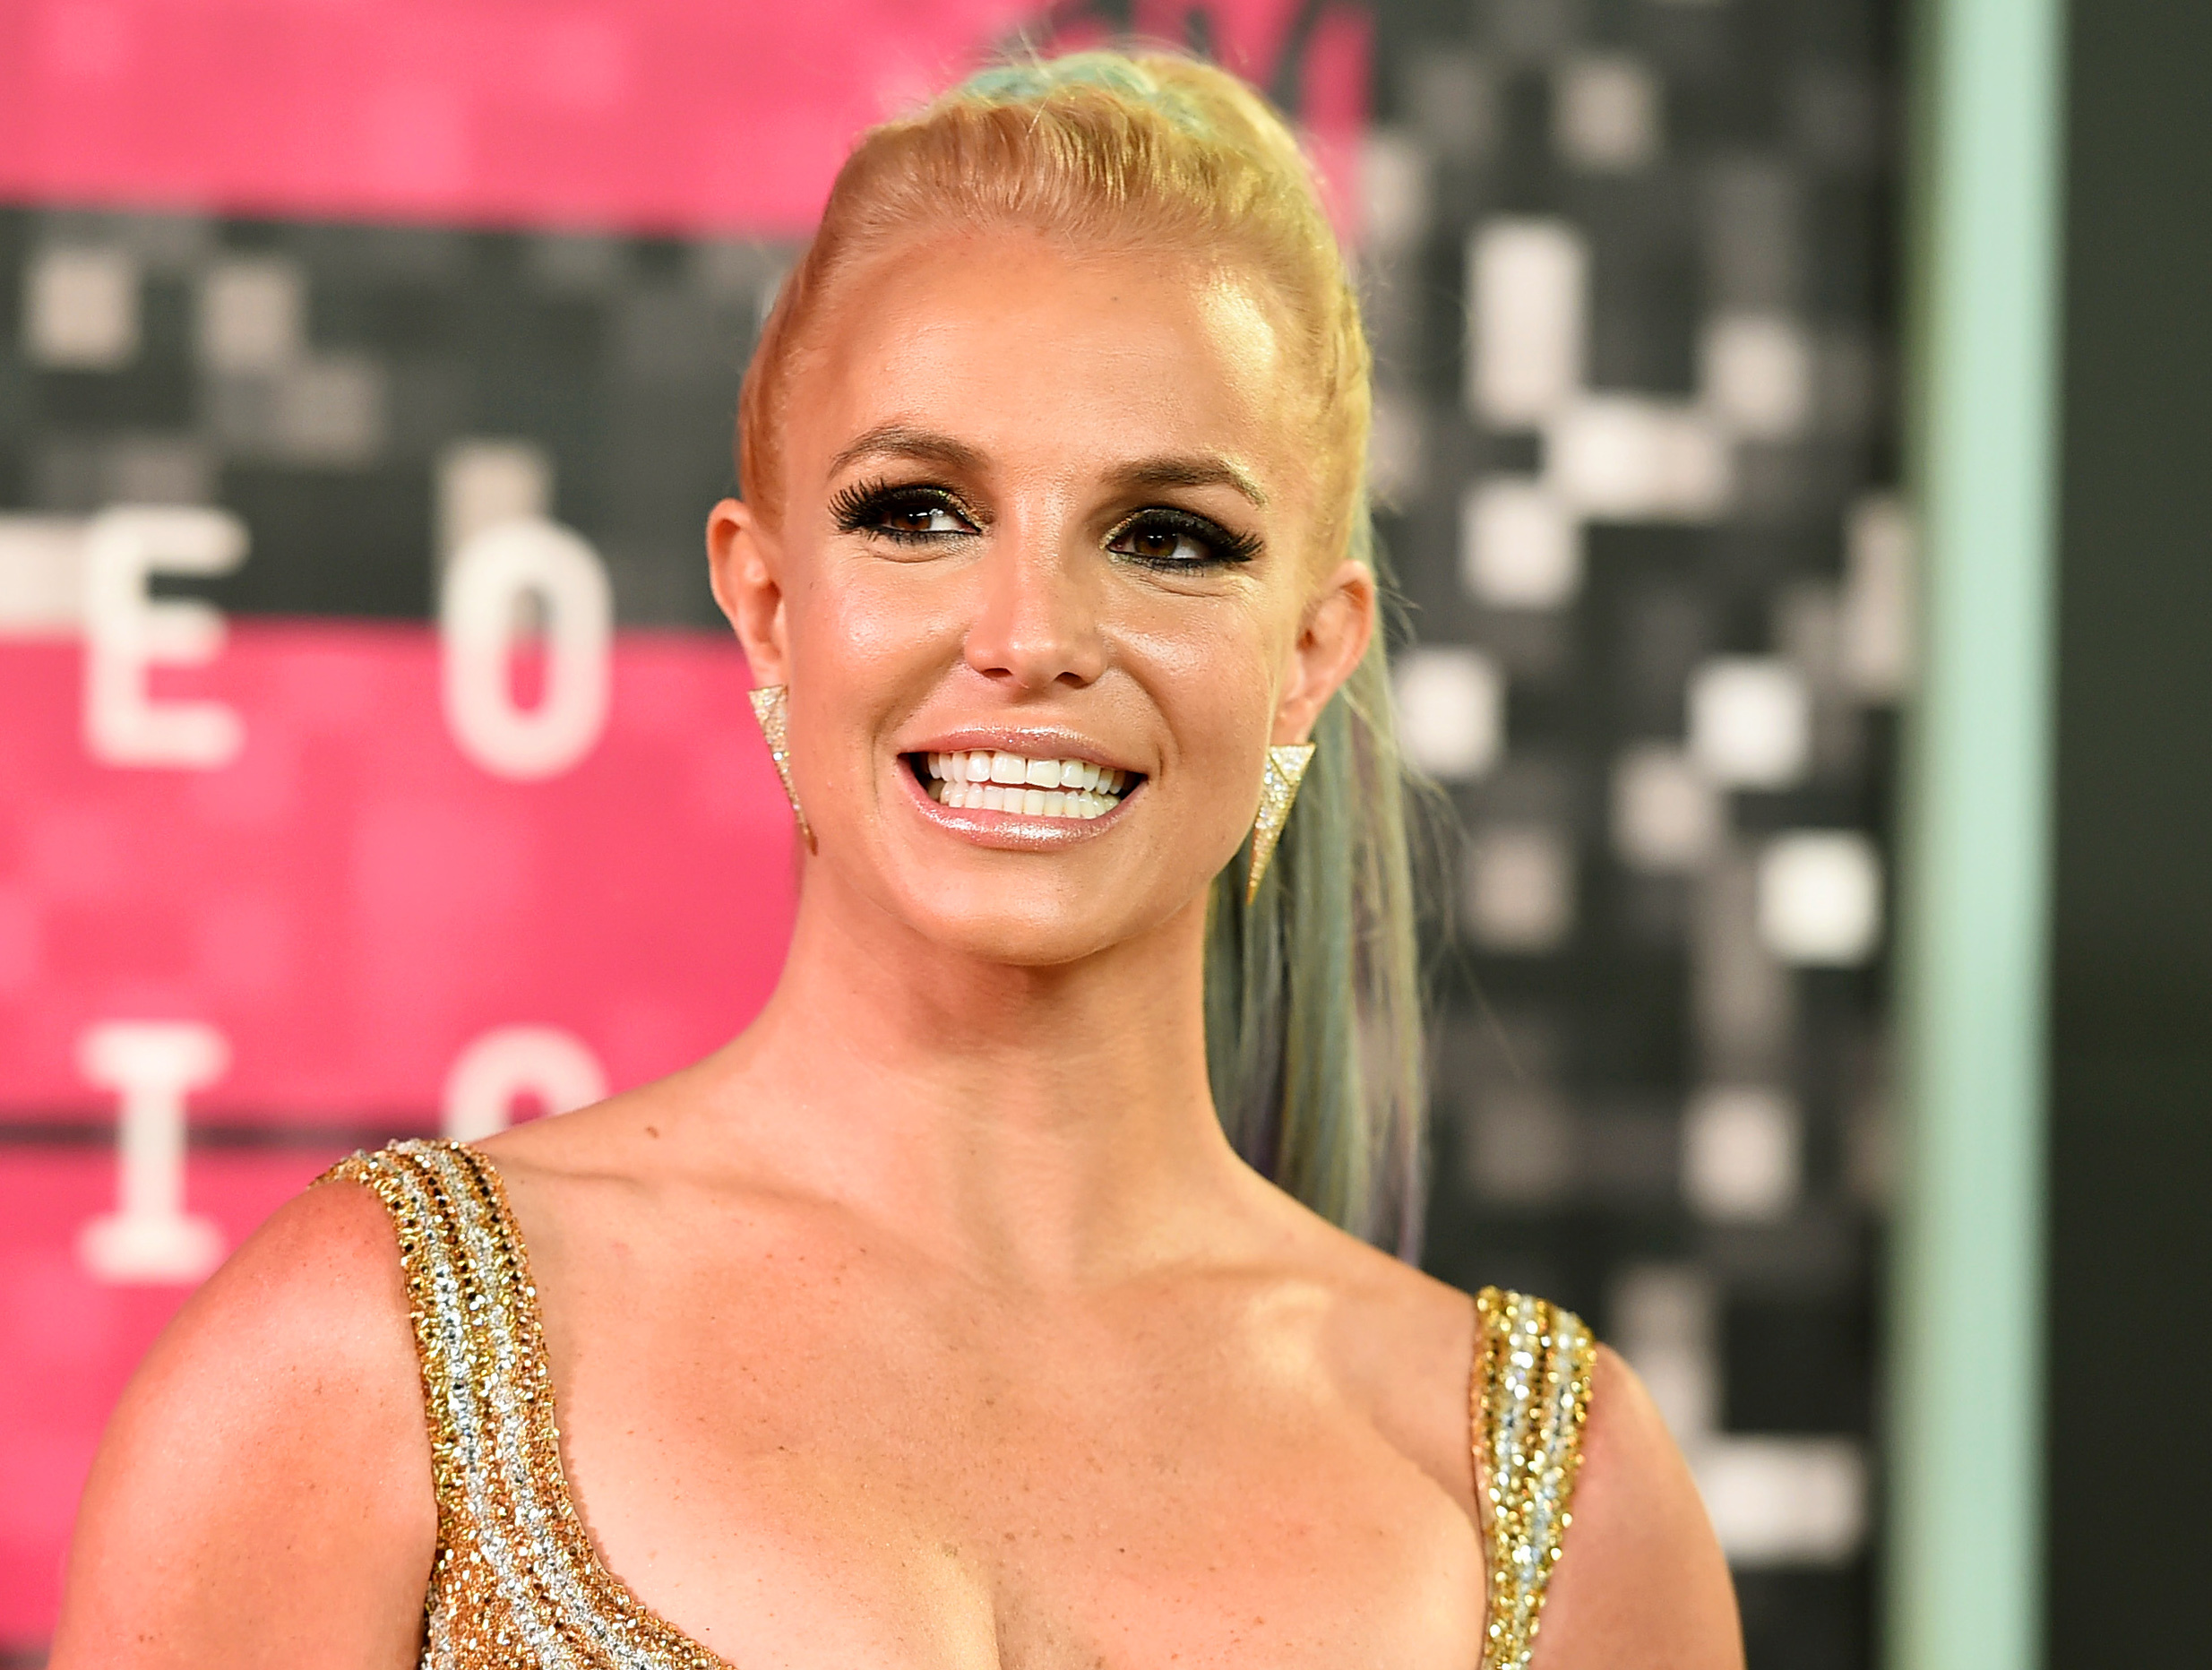 Pop superstar Britney Spears is set to ride with the Late Late Show host on Thursday Aug. 25, one day before the release of her ninth album